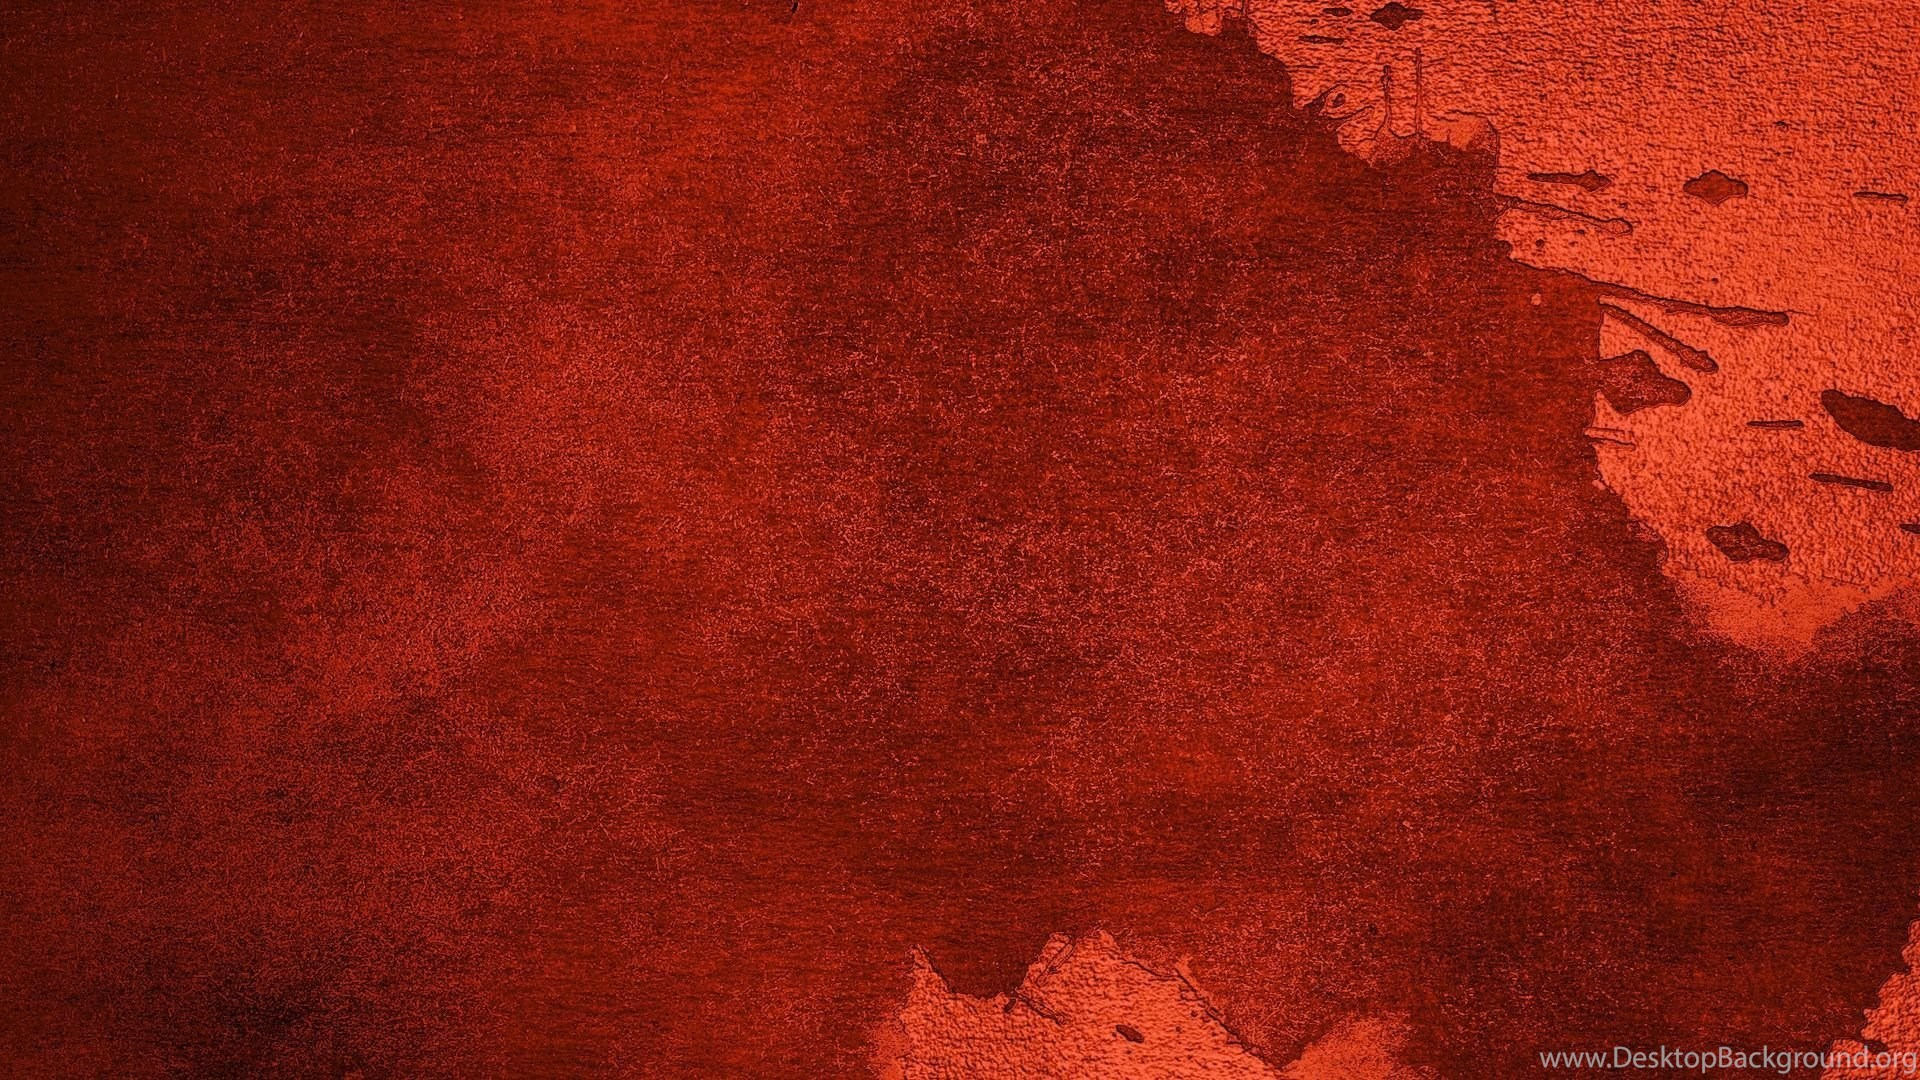 Download Wallpapers 2560x1080 Close up, Color, Red, Texture ...